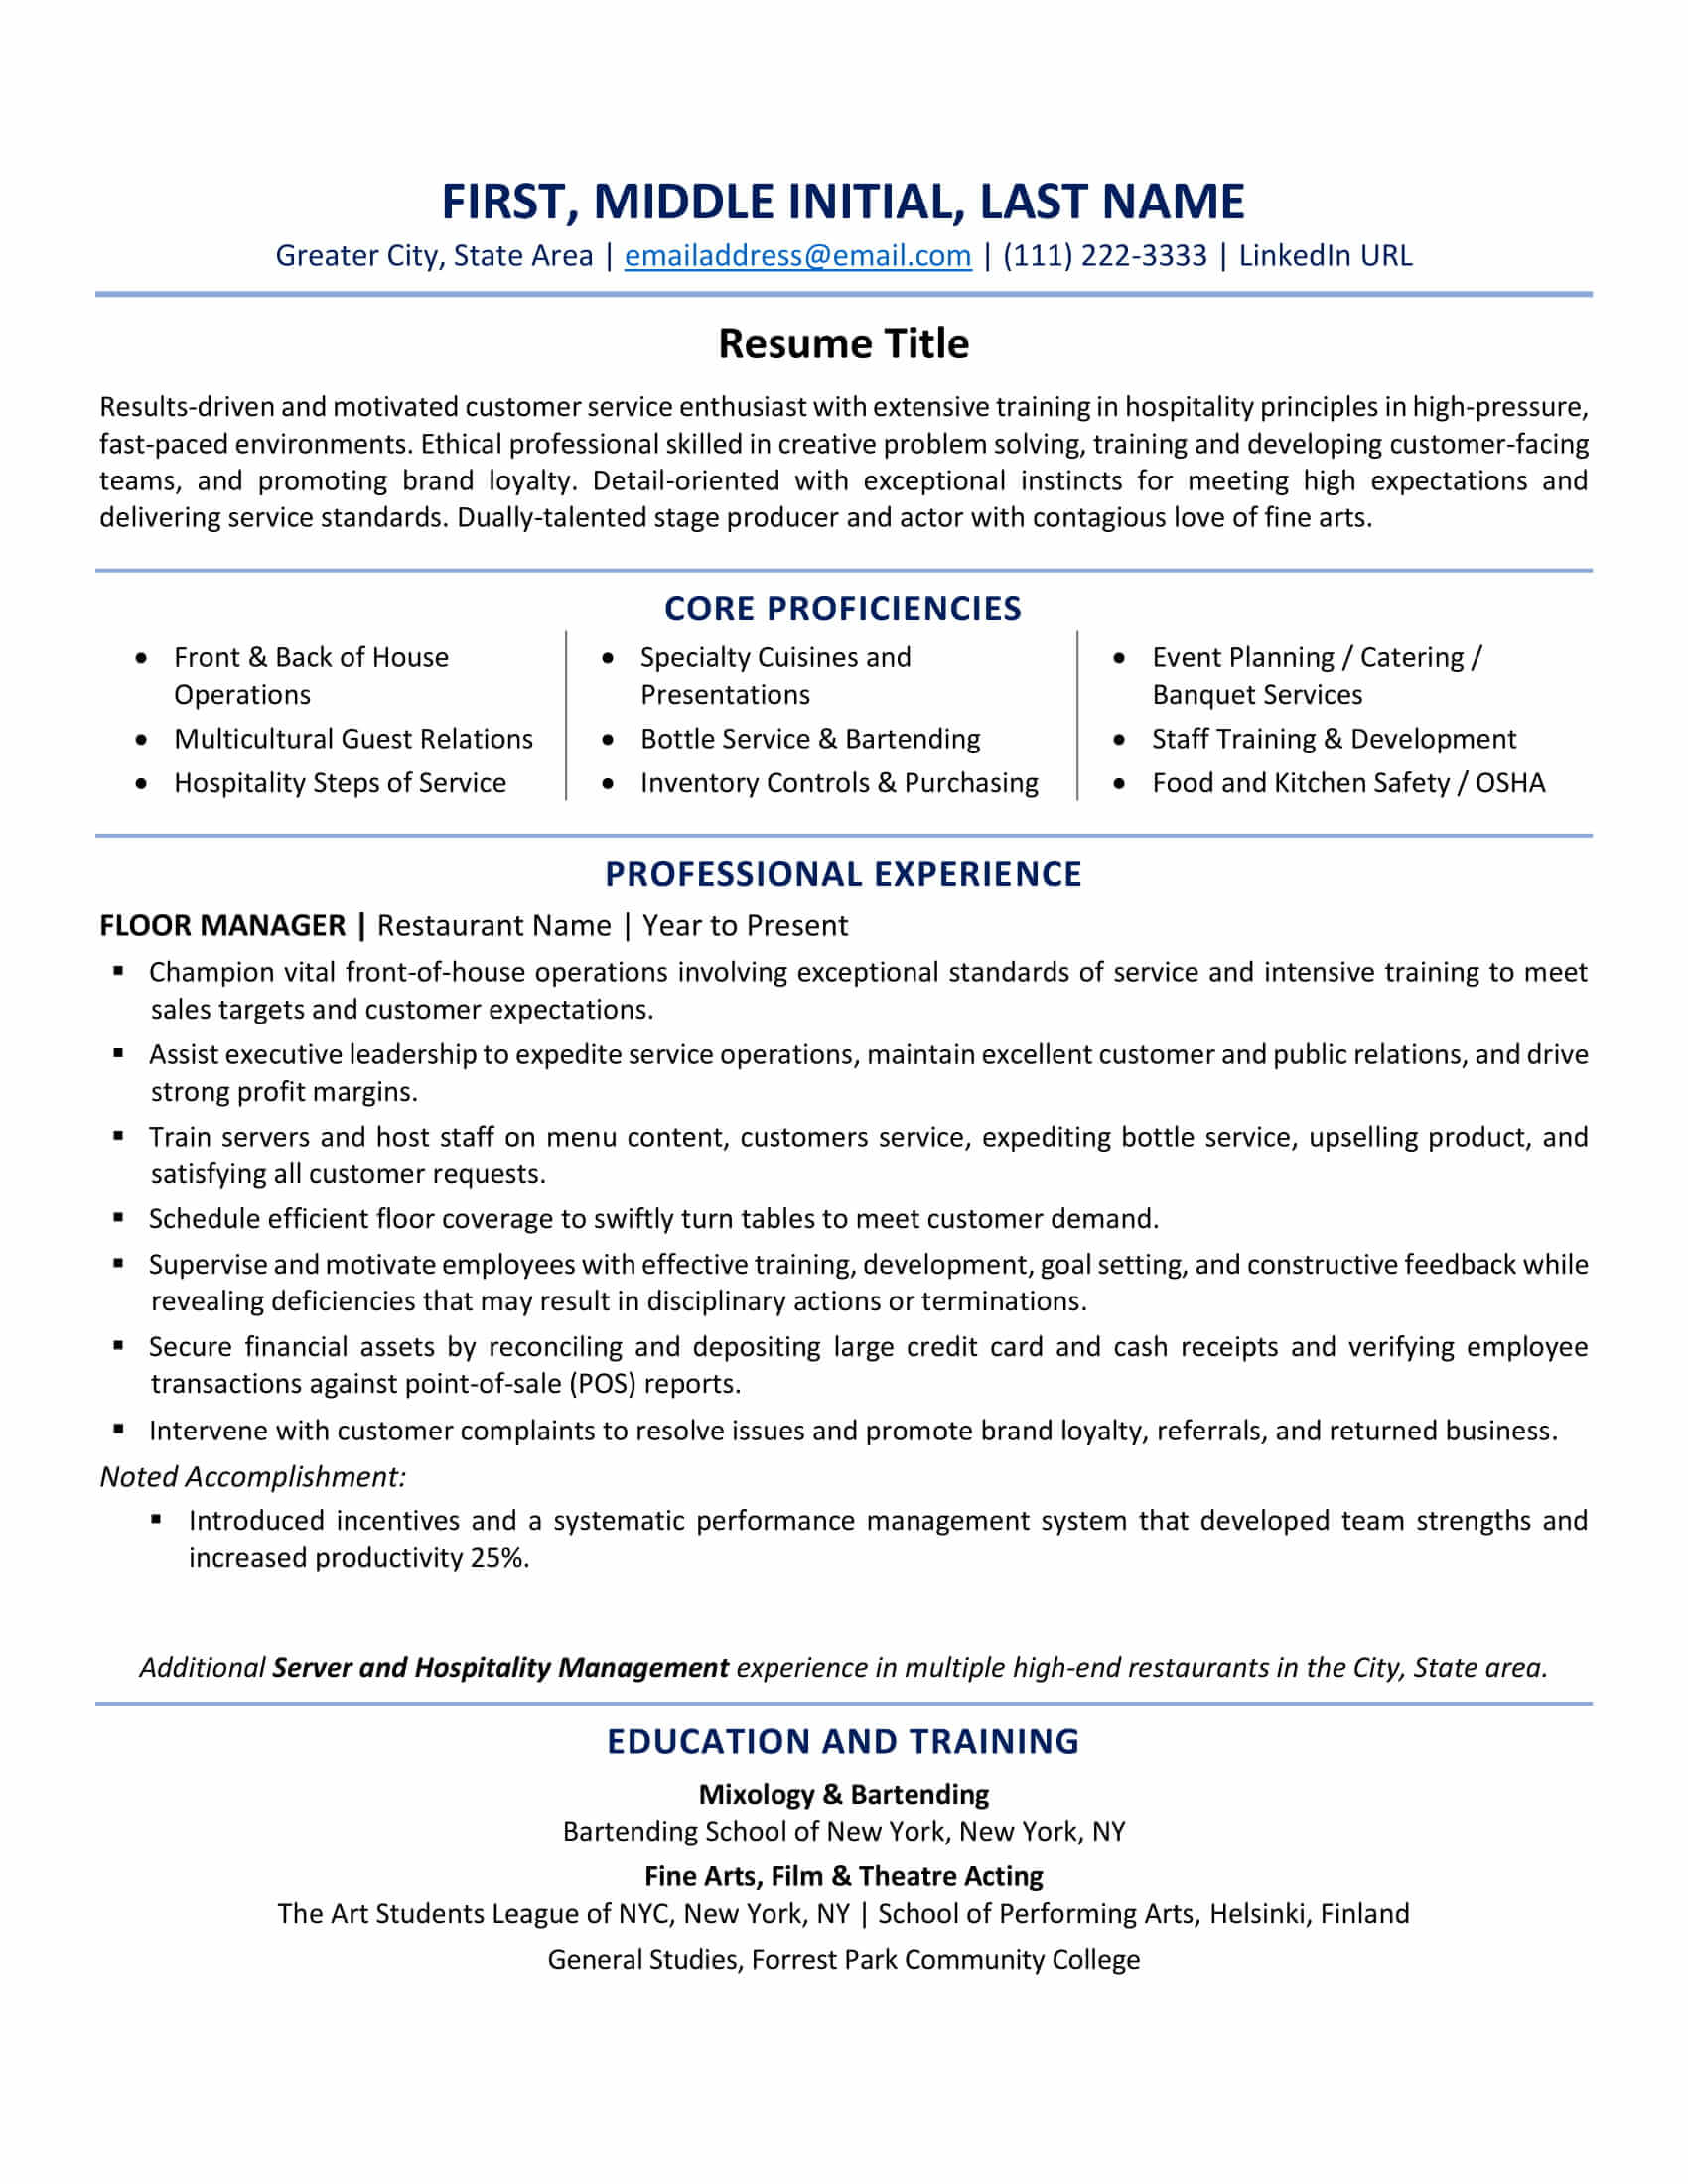 Resume writing over 50 professional biography writing service